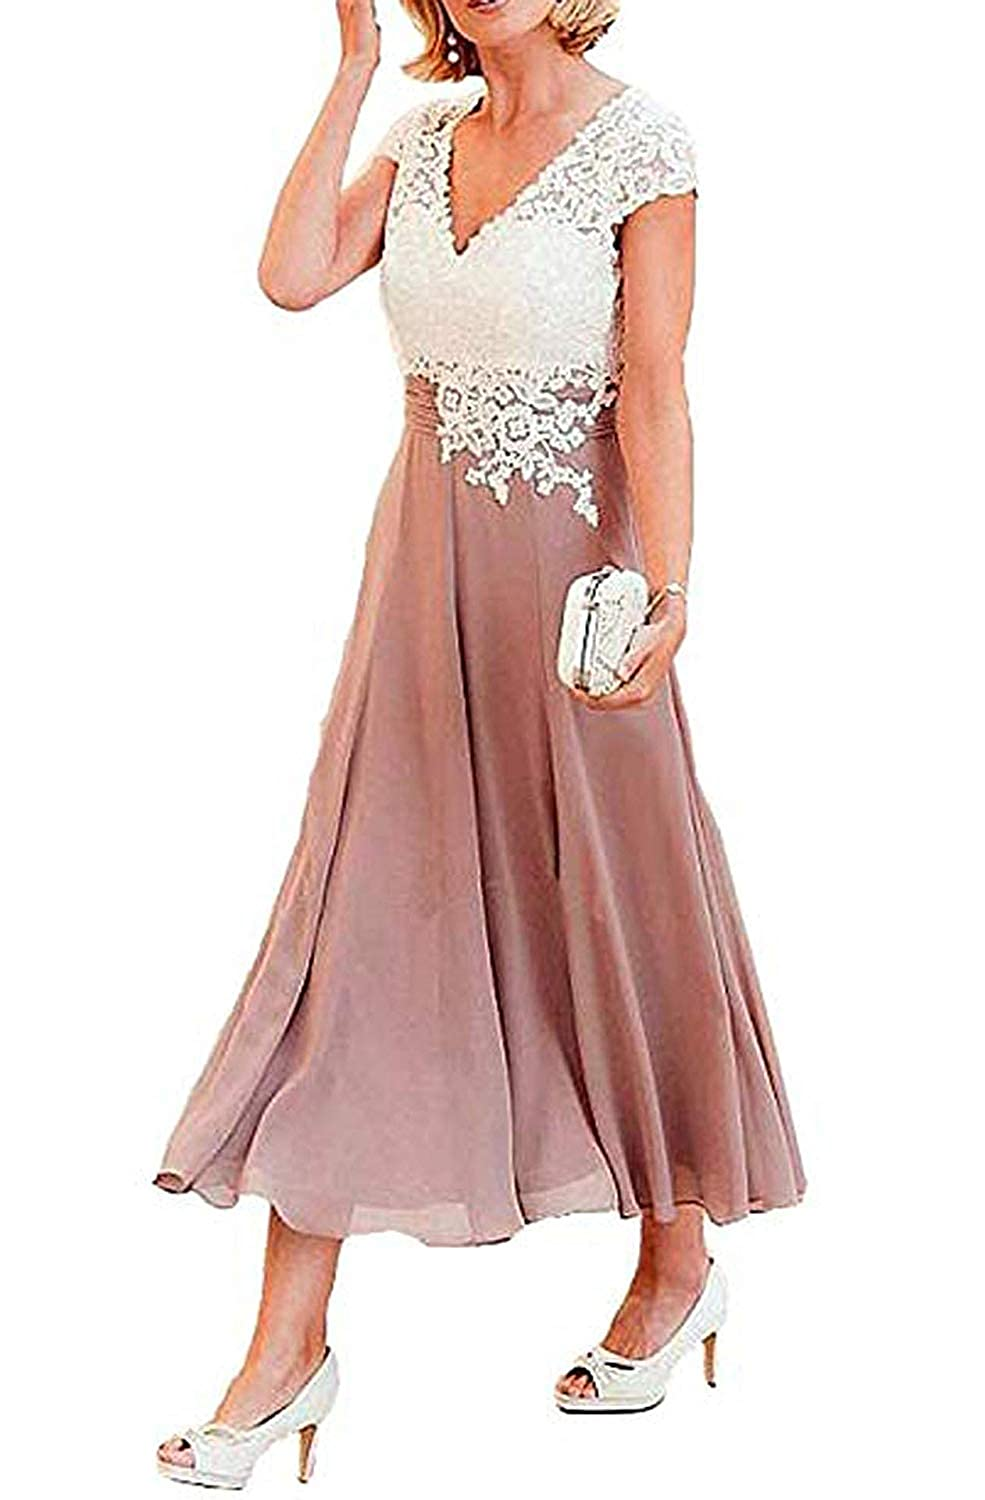 A_dusty Pink ZLQQ Women's Tea Length Mother of The Bride Dresses Short Sleeve Formal Prom Gown Pocket